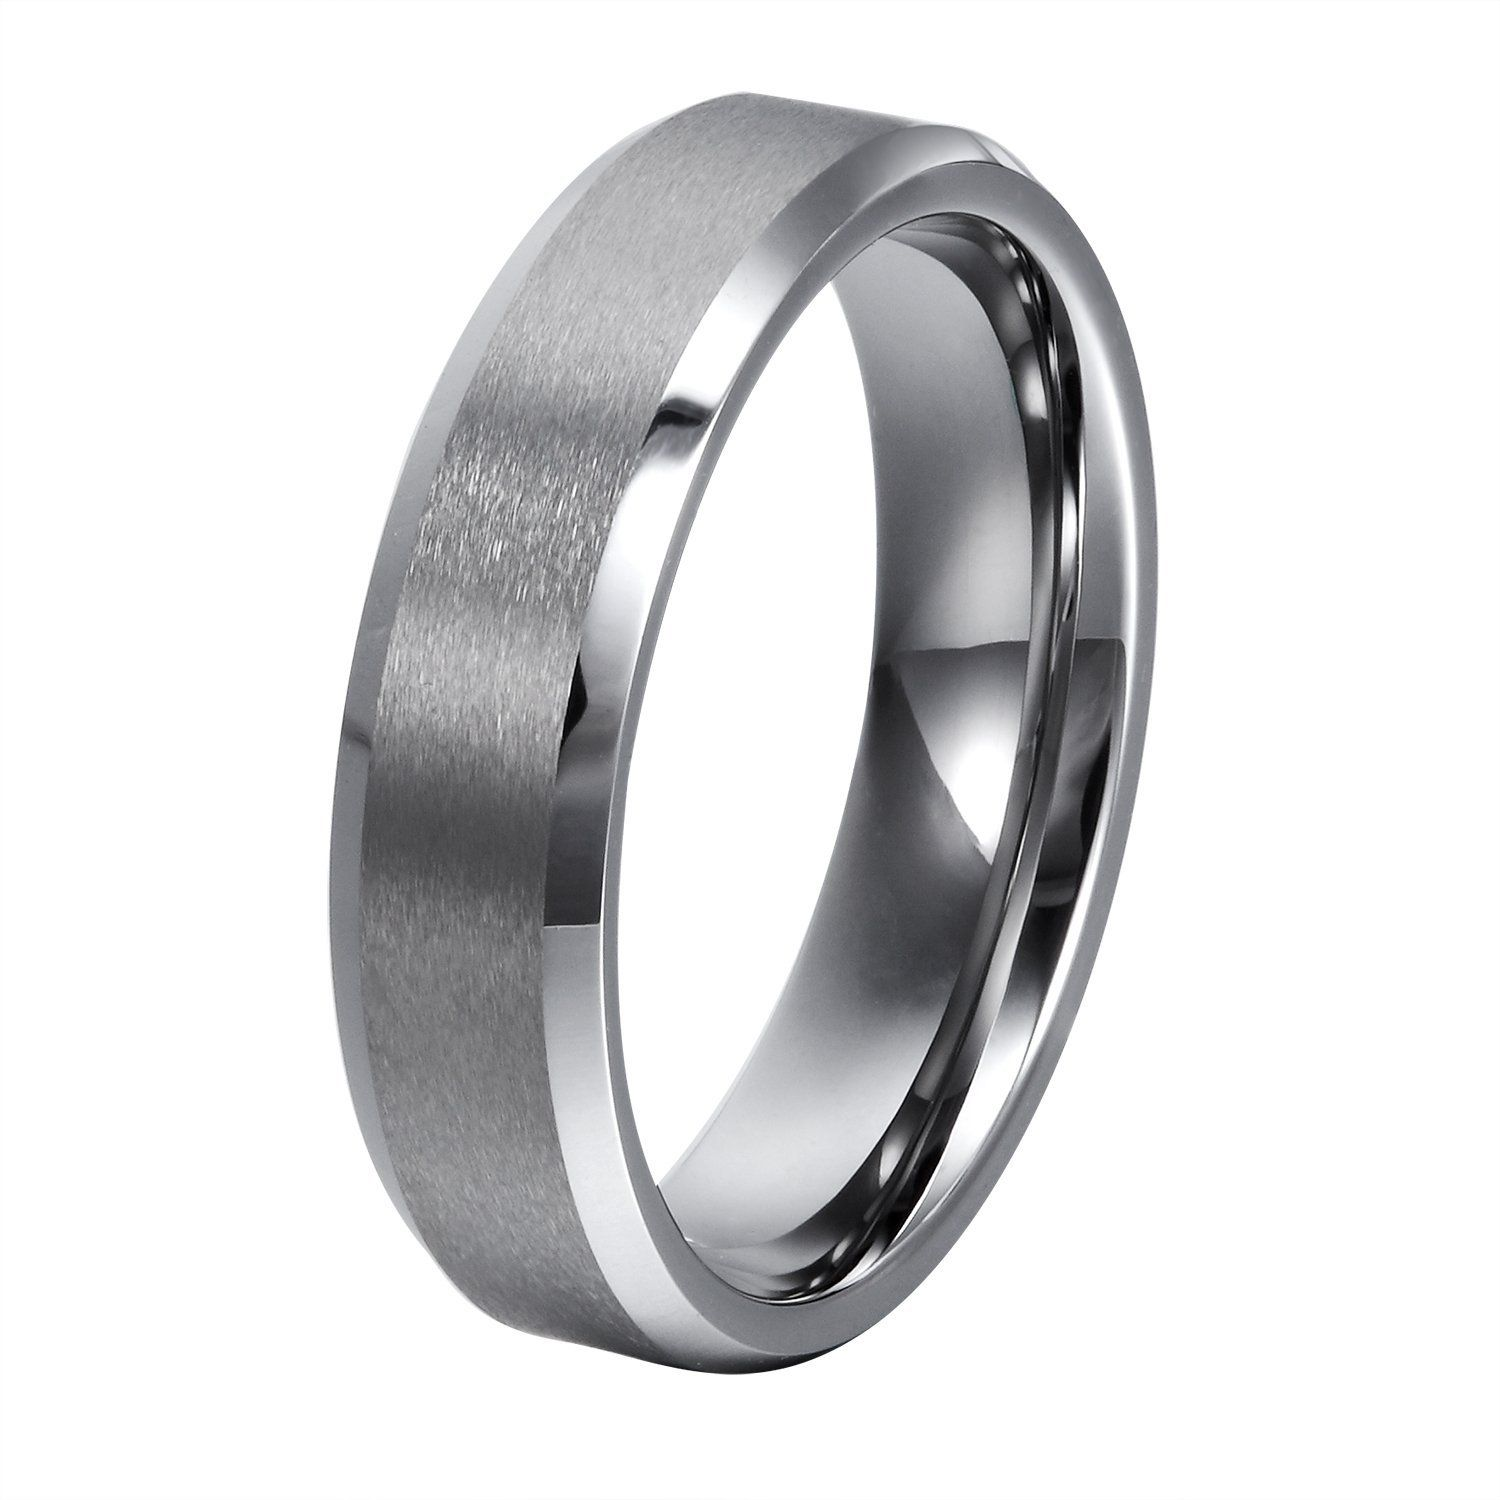 Will Queen Beveled Tungsten Carbide Rings With Matte Center Mens Womens Comfort Fit Wedding Bands Highly Durable Unique Promise For S Engagement